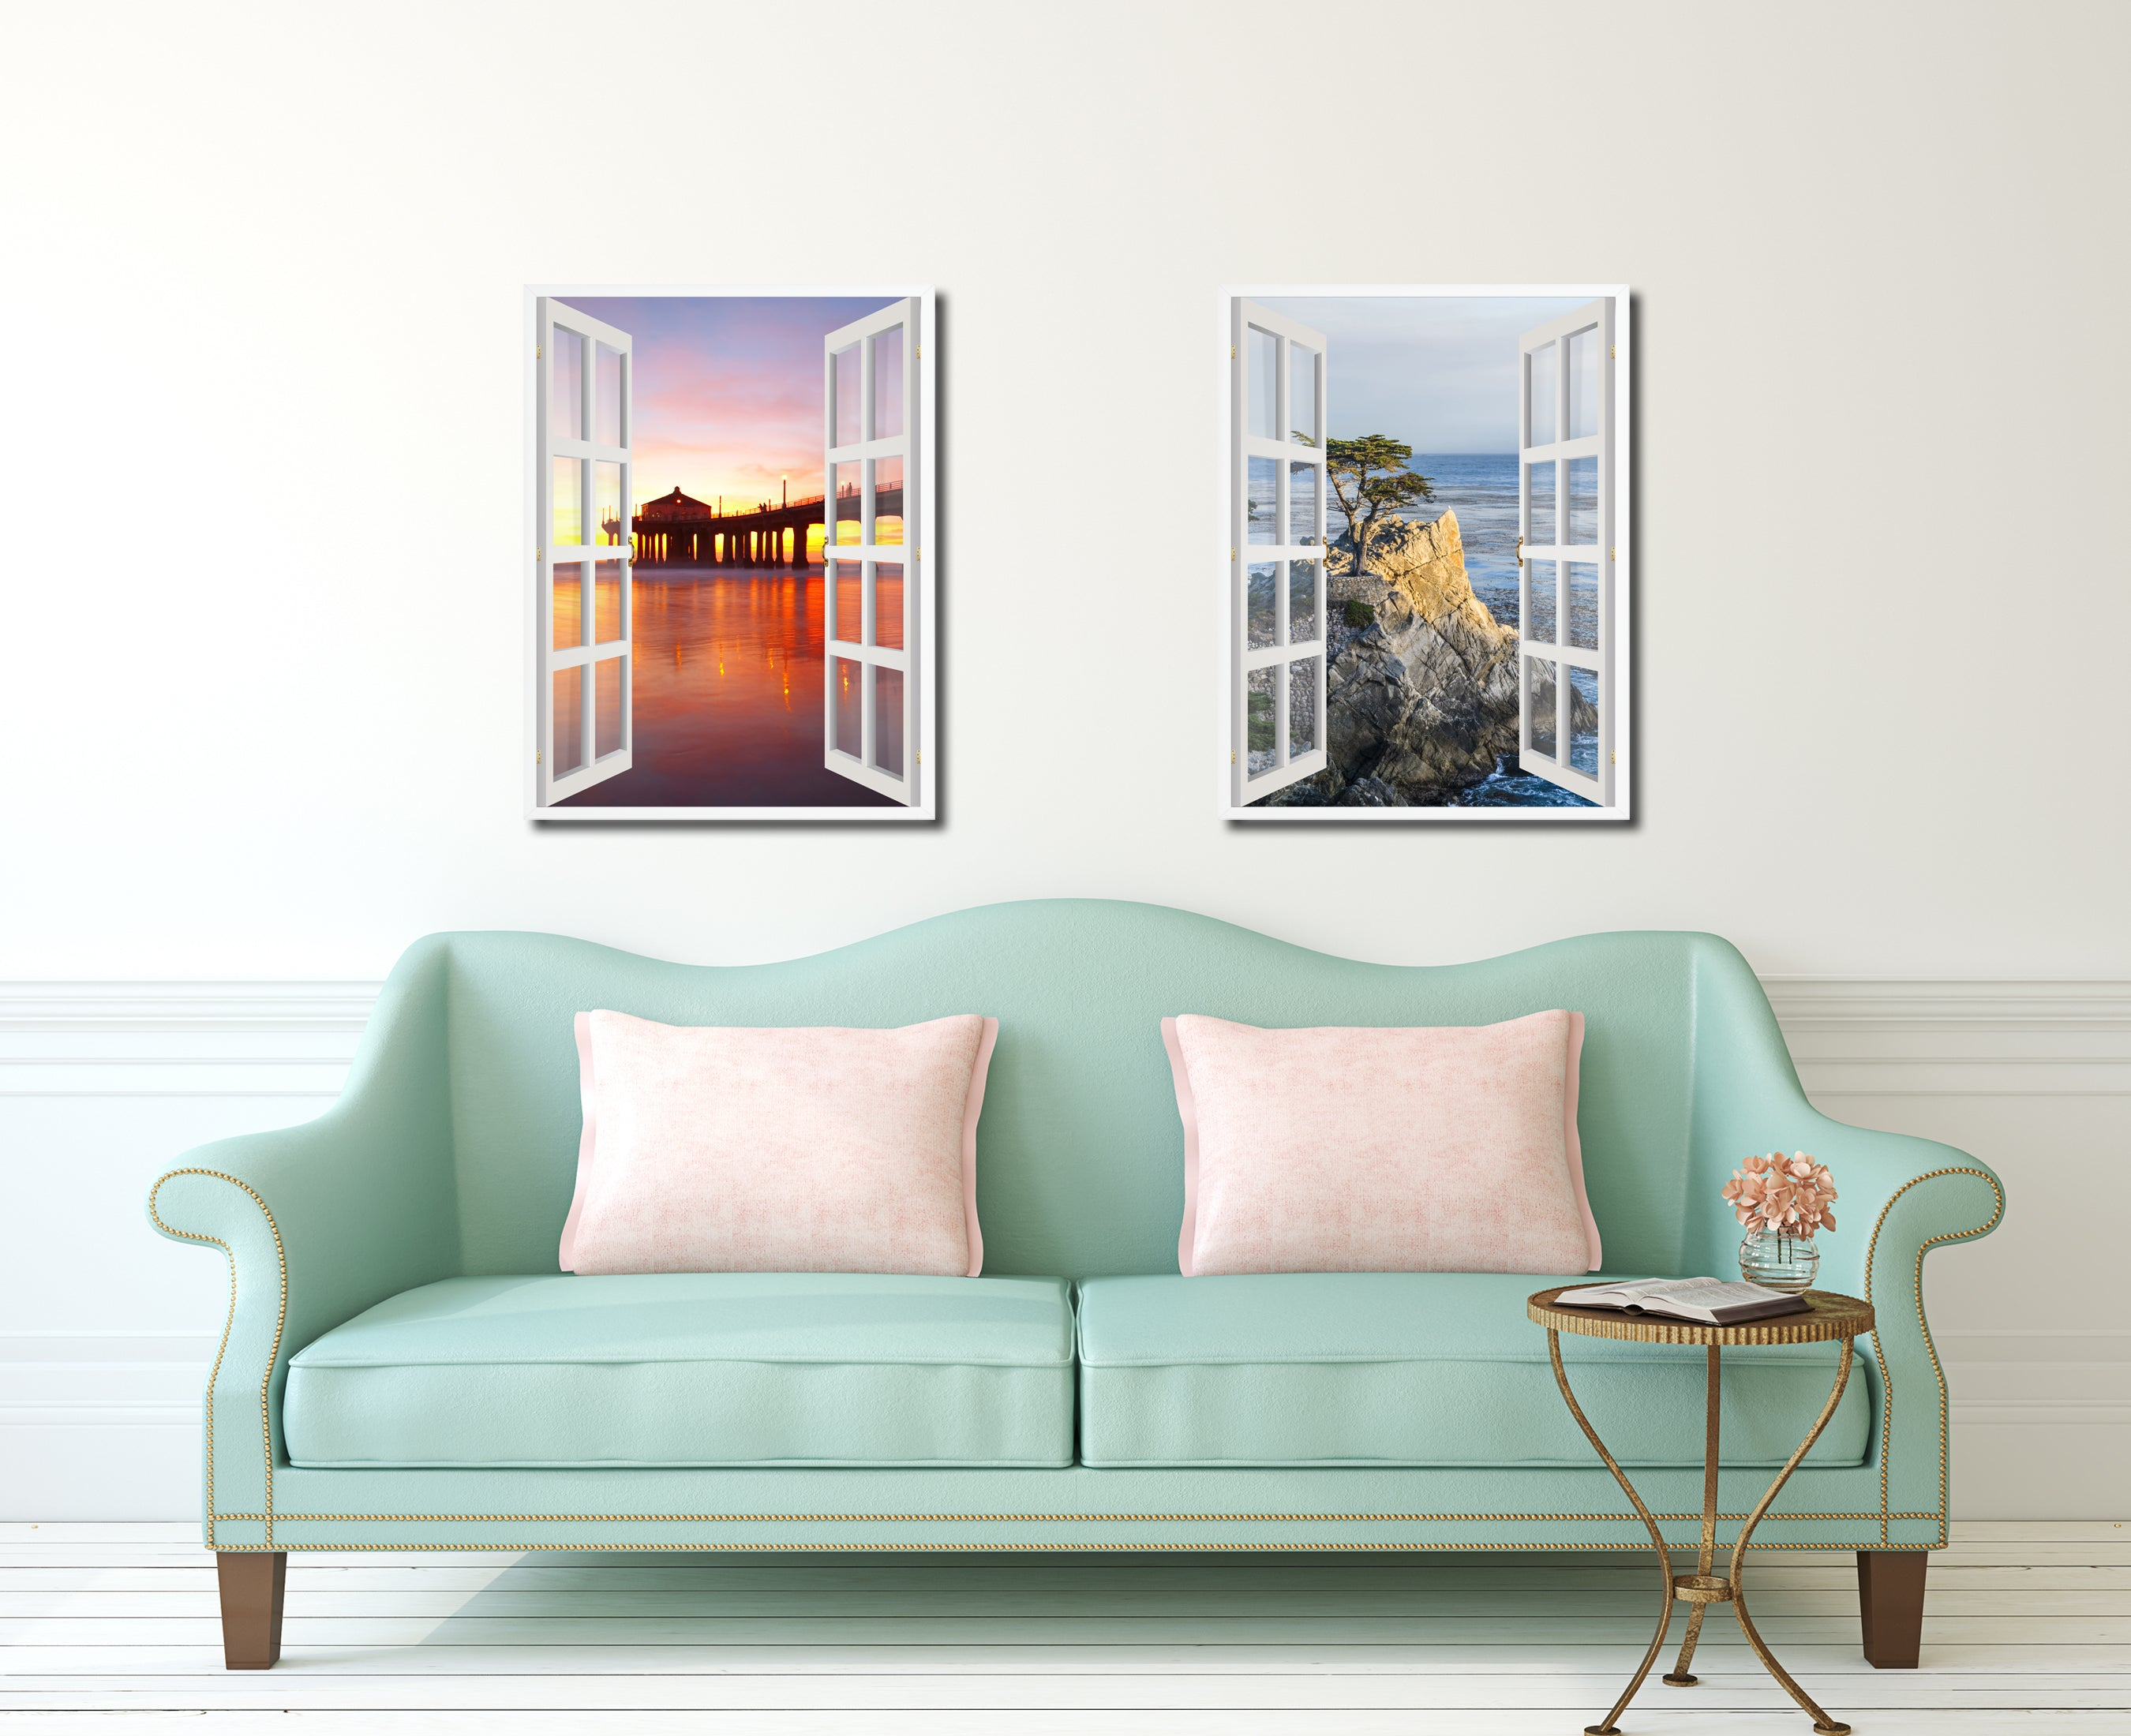 Manhattan Beach California Sunset View Picture French Window Canvas Print  With Frame Gifts Home Decor Wall